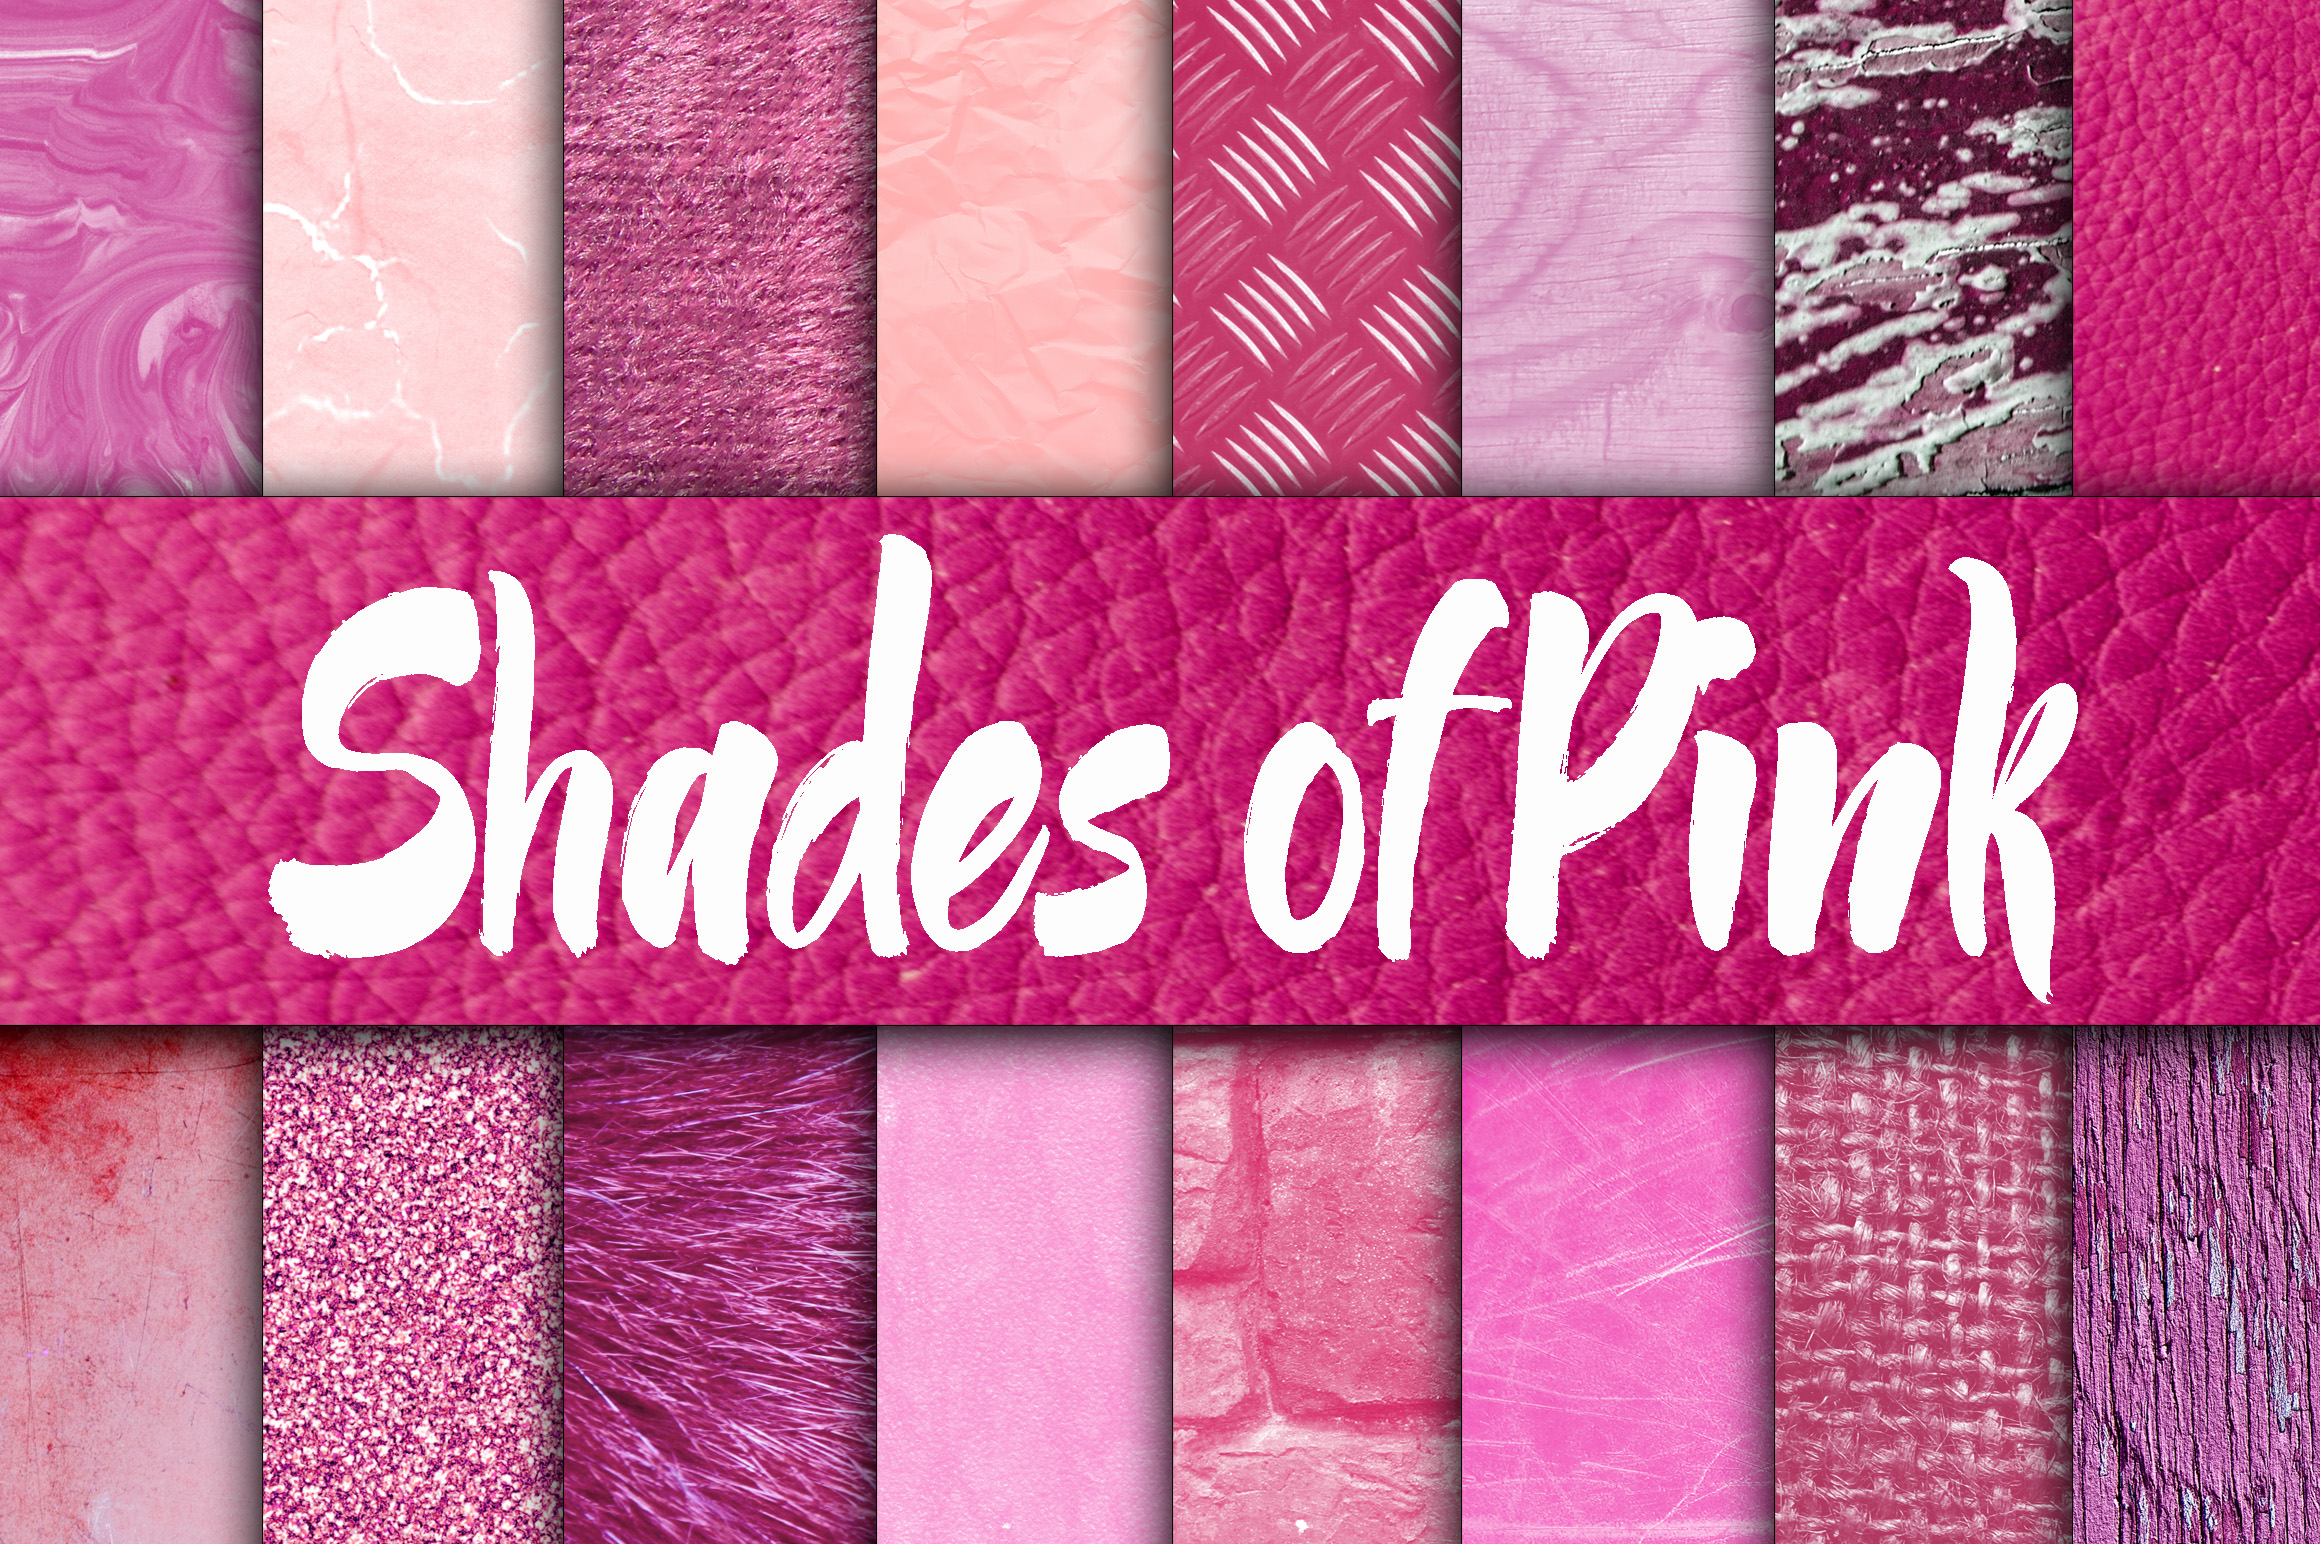 Shades of Pink Digital Paper Textures Graphic By oldmarketdesigns Image 1